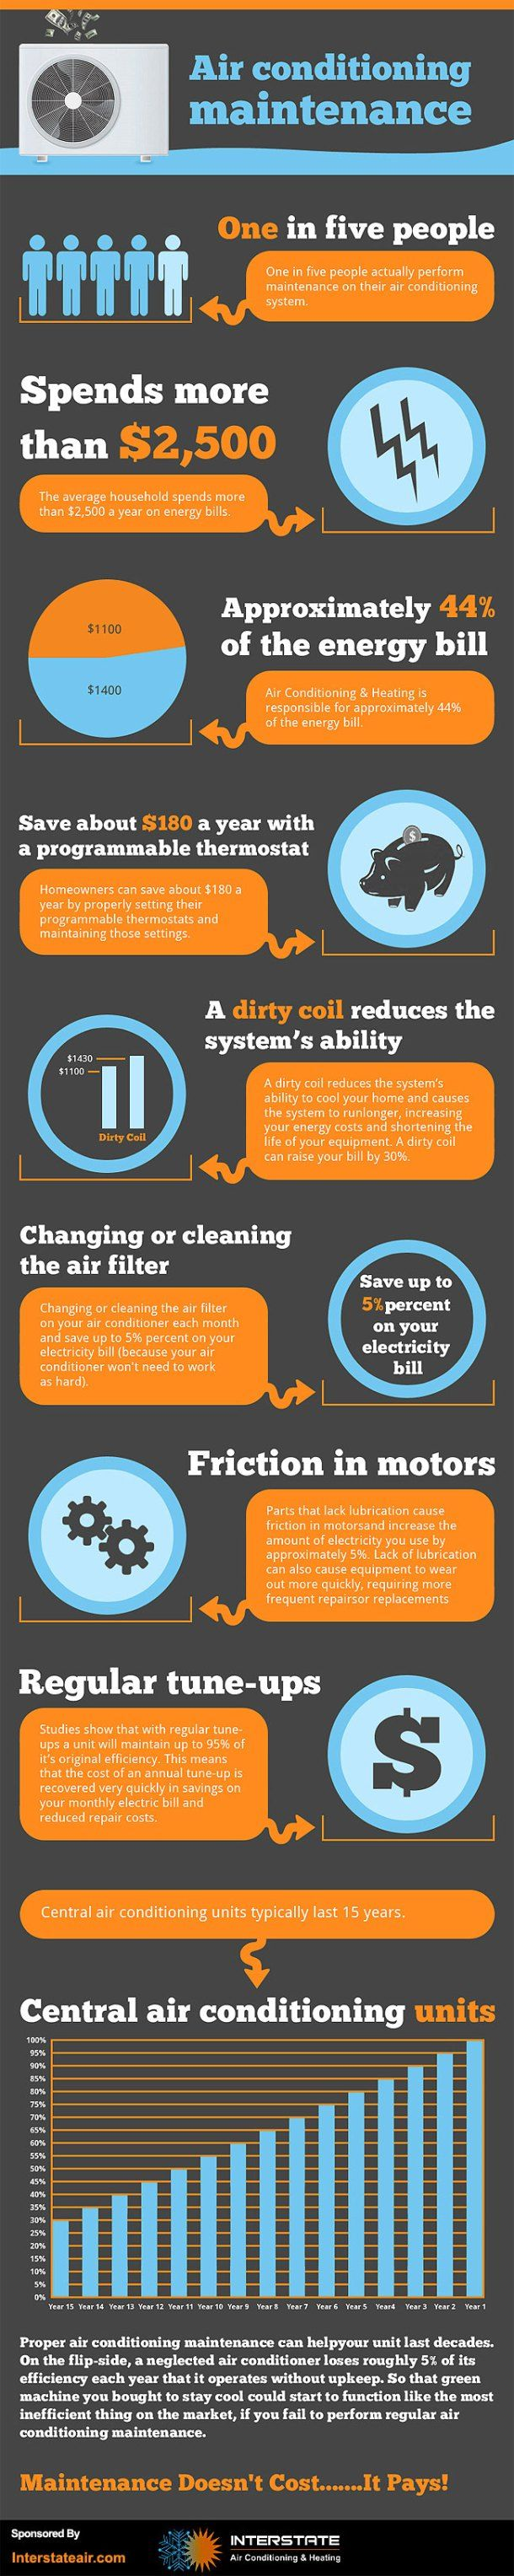 Air Conditioning Maintenance Infographic Airconditioning